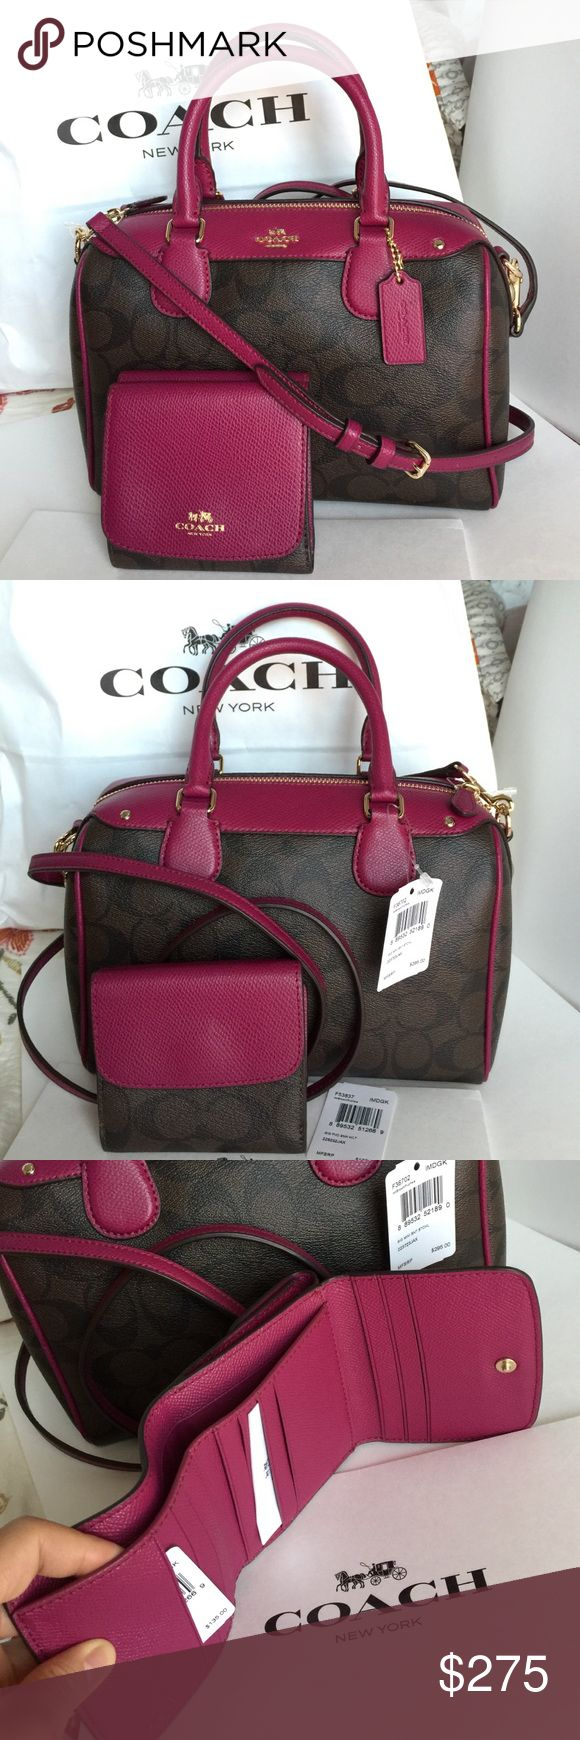 Coach Purse & Wallet 100% Authentic Coach Purse and Wallet, both brand new with tag! Coach Bags Crossbody Bags